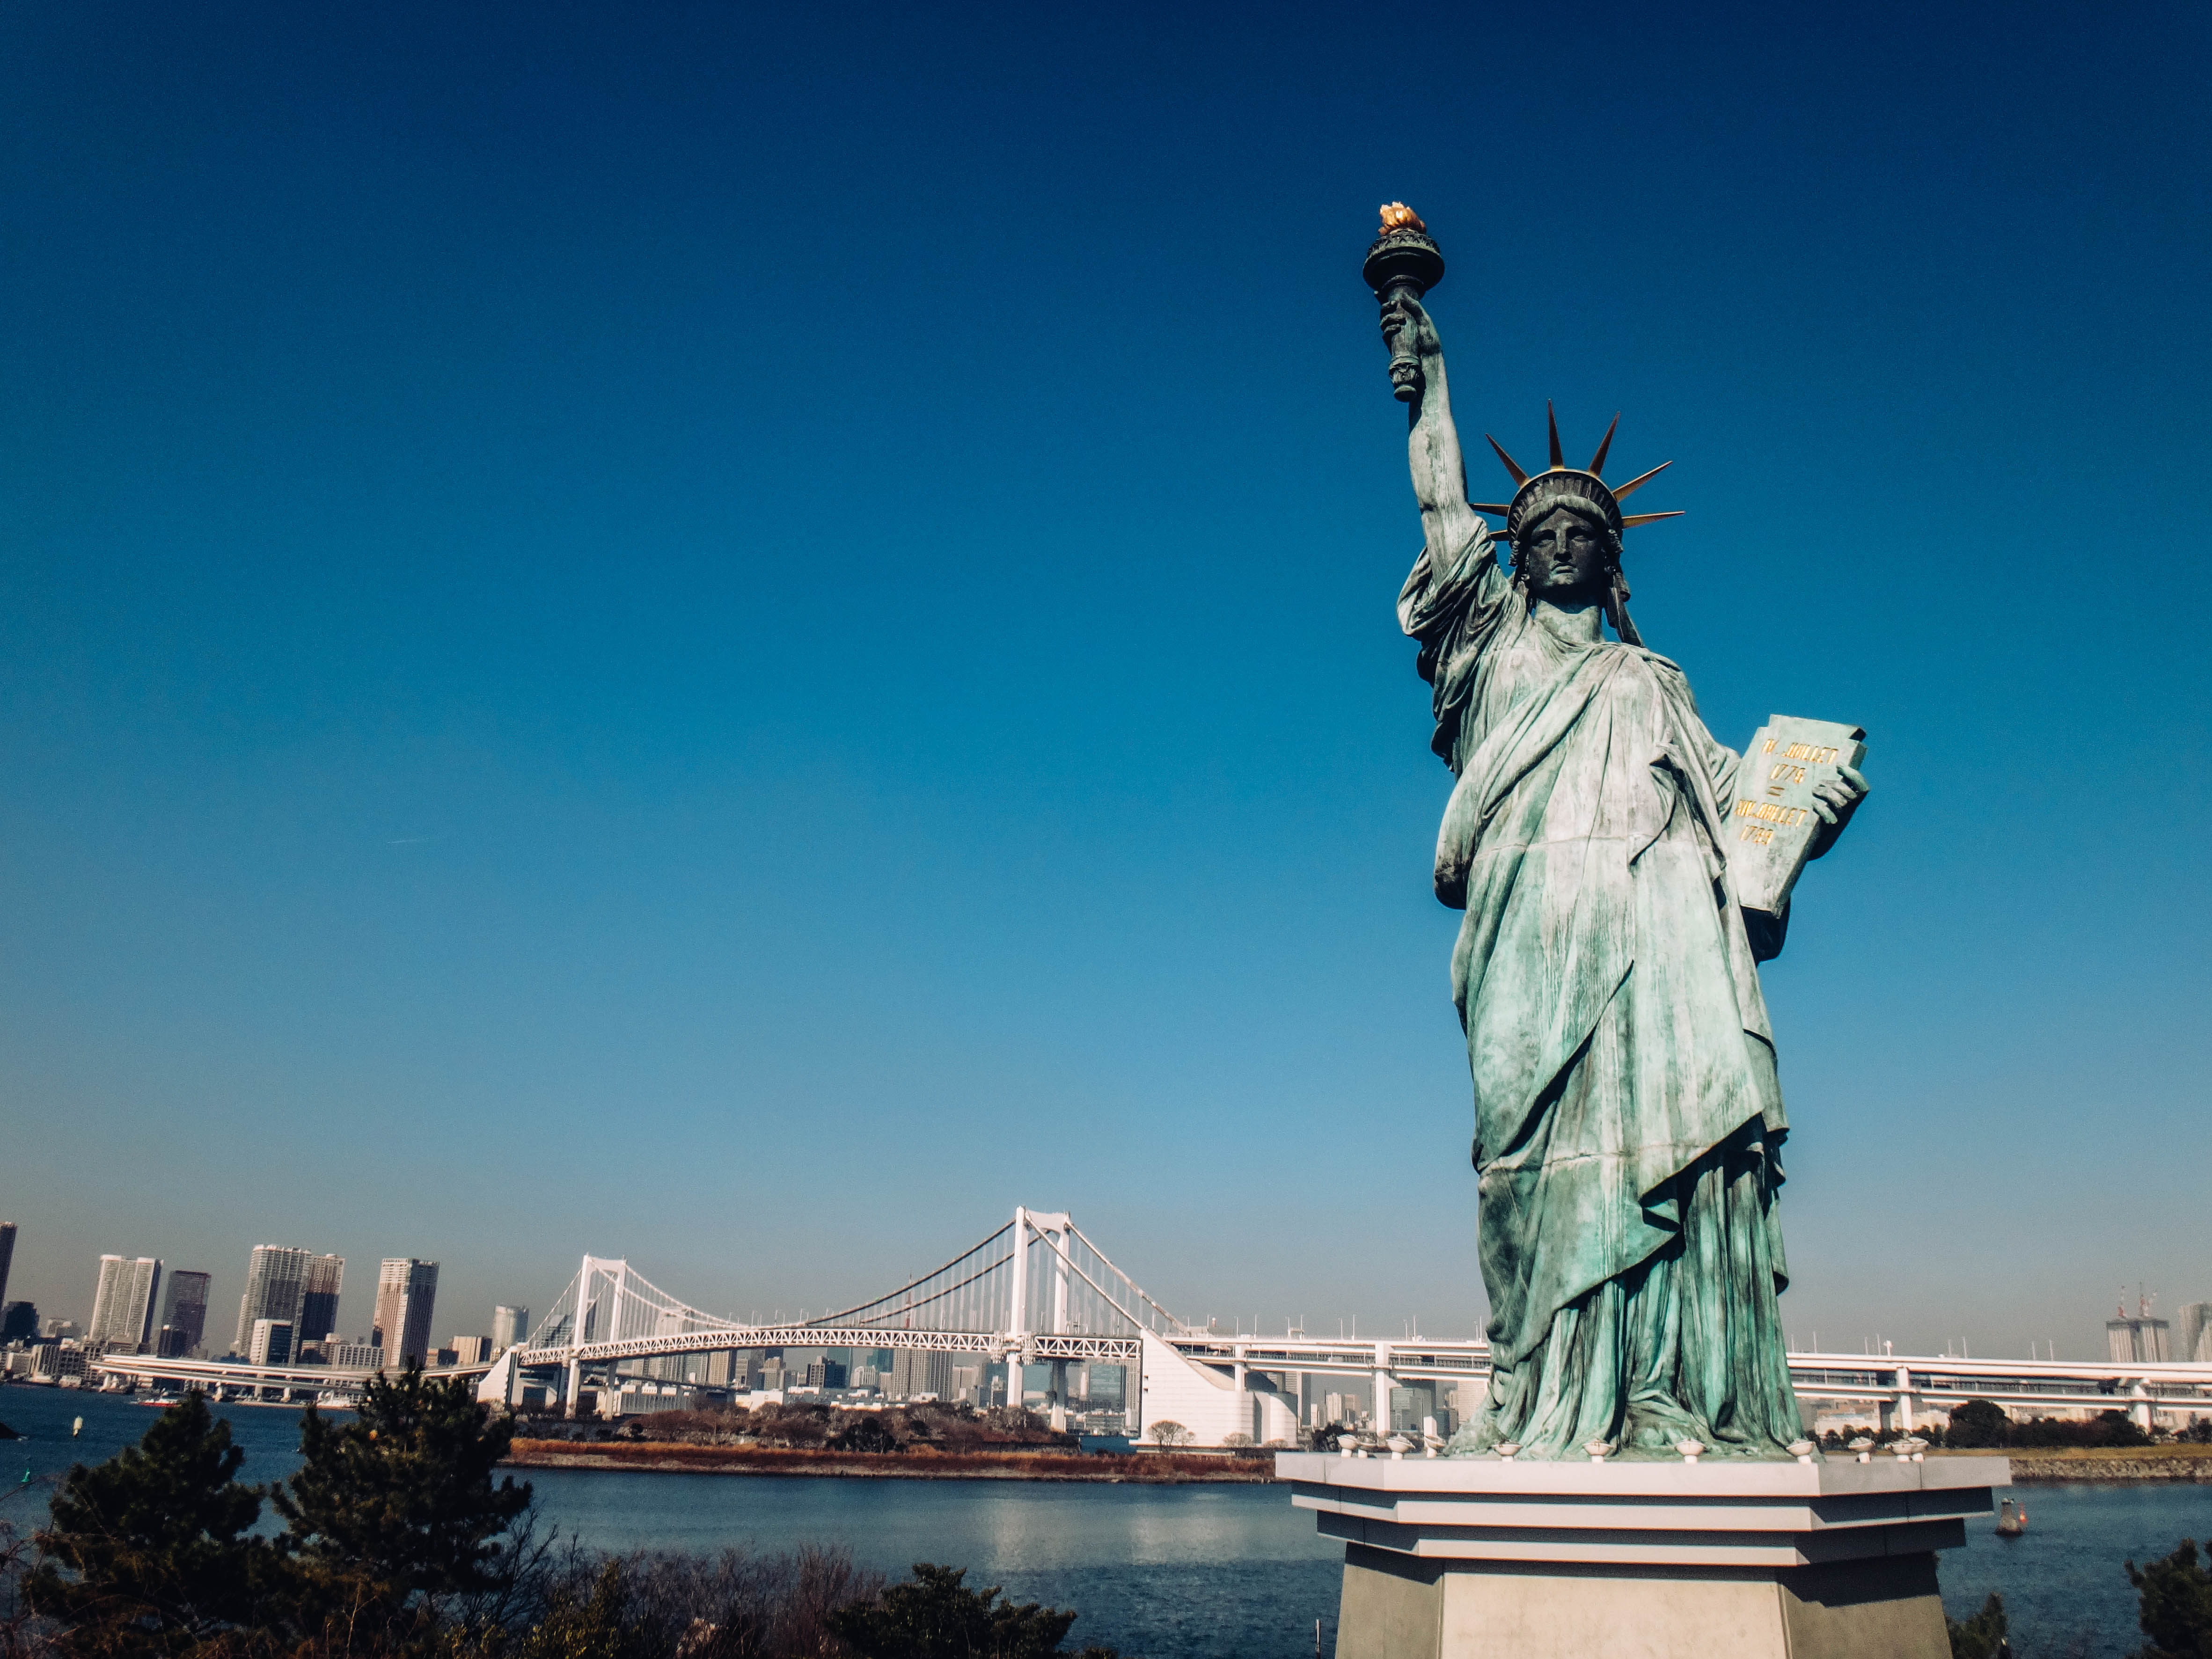 STATUE OF LIBERTY. A replica of the famous New York icon found in Odaiba. Photo provided by Irene Maligat